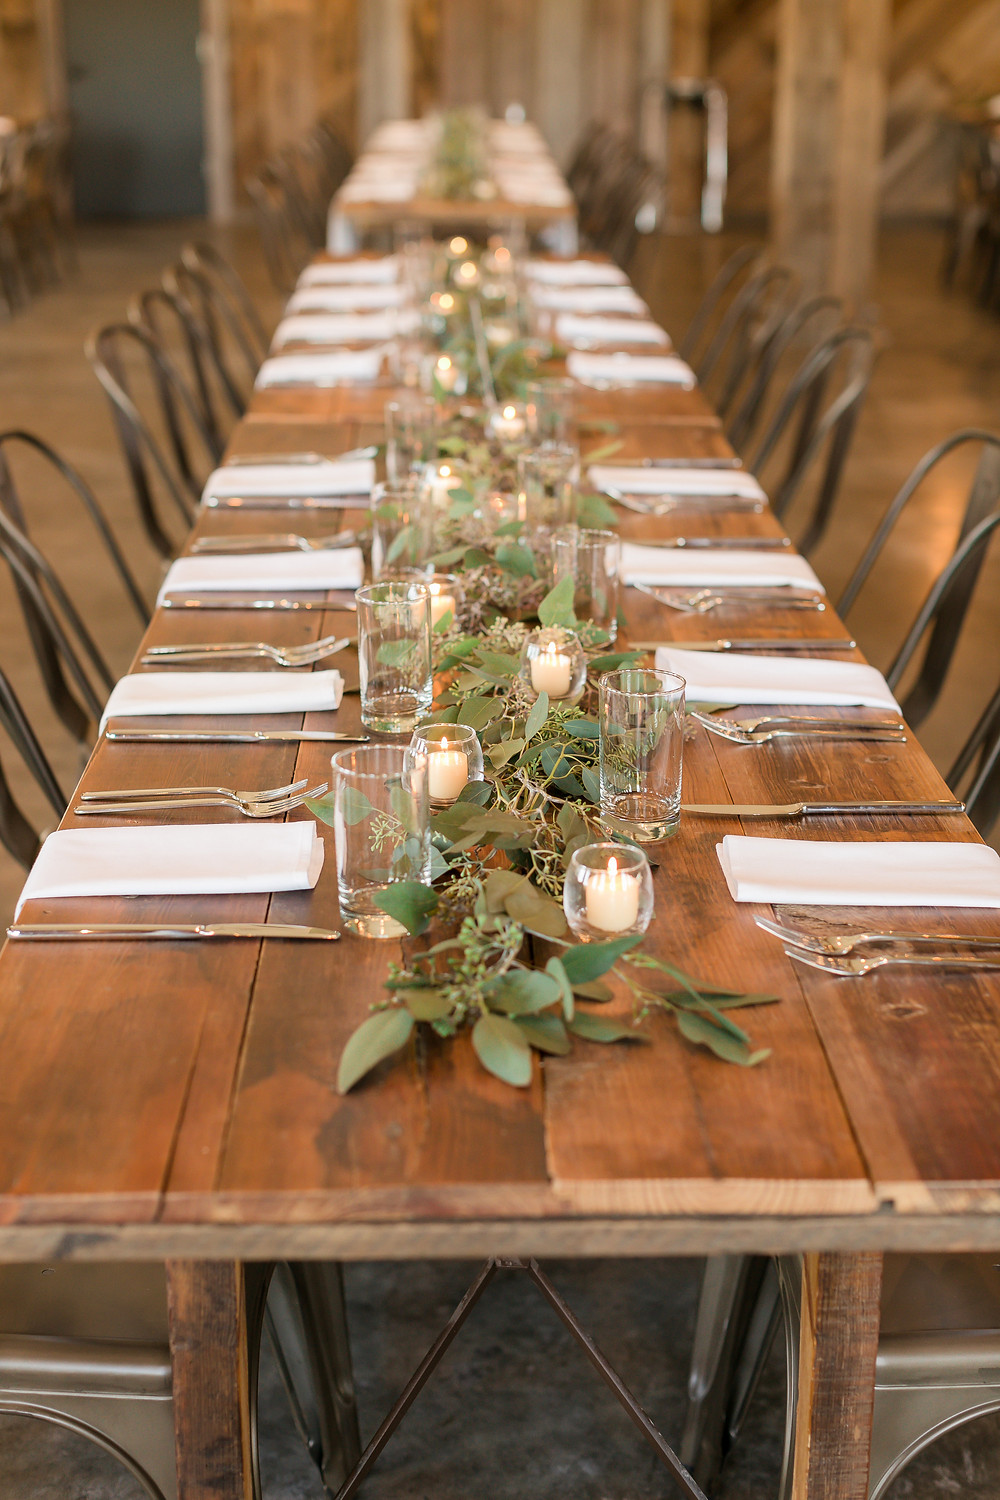 eucalyptus greenery and candles on rustic farm tables at rapid creek cidery by studio bloom iowa florist iowa city